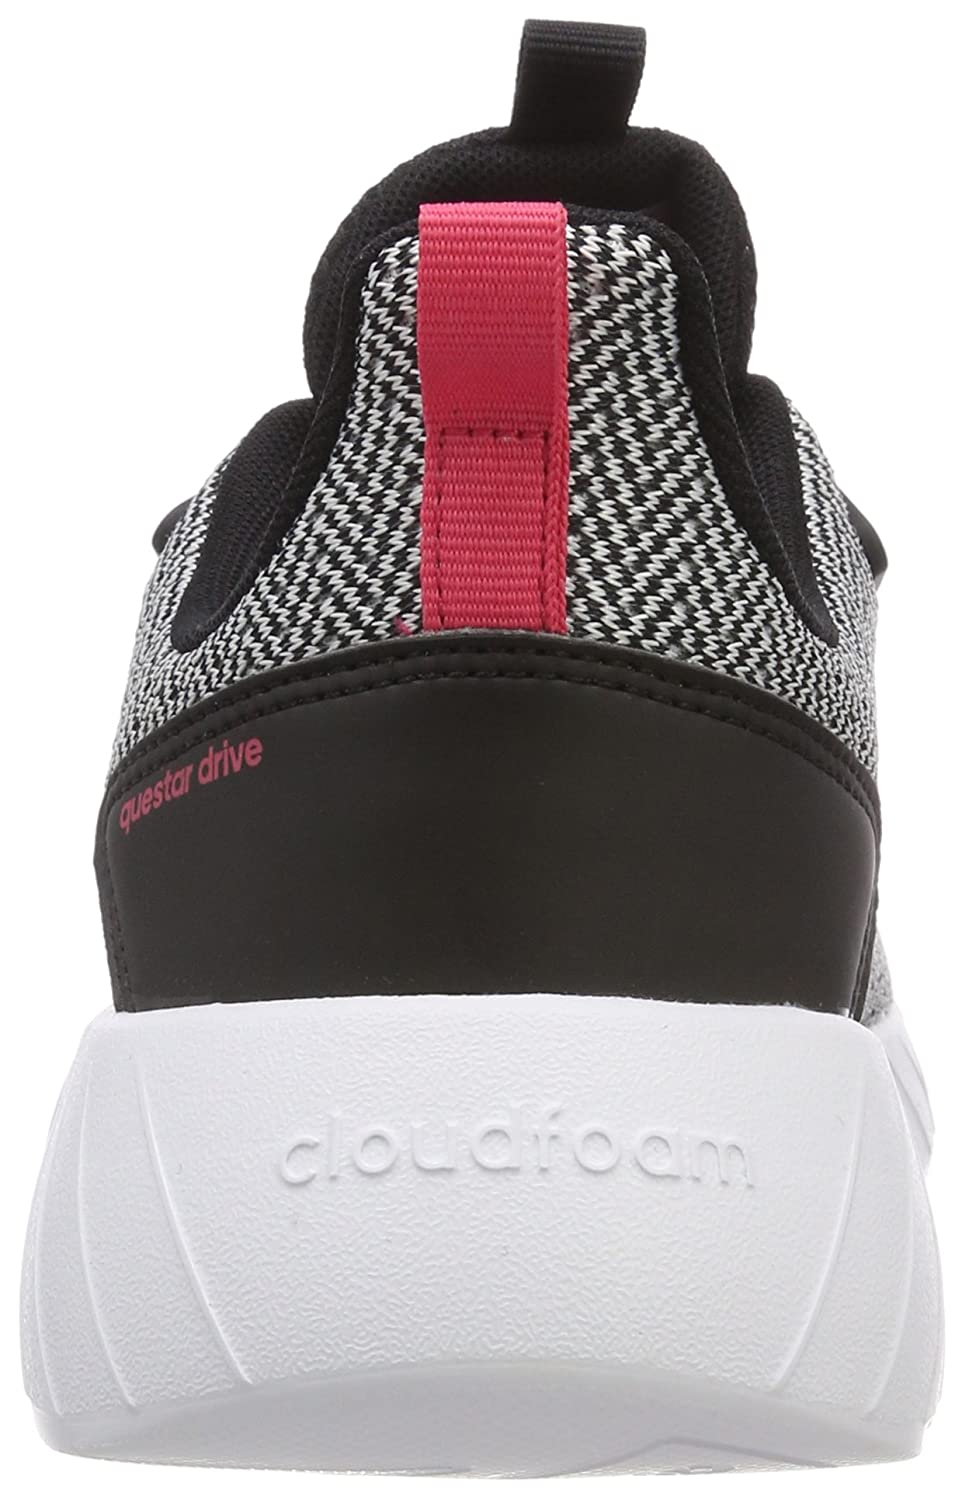 brand new e4dc6 804aa adidas Girls  Questar Drive Competition Running Shoes  Amazon.co.uk  Shoes    Bags